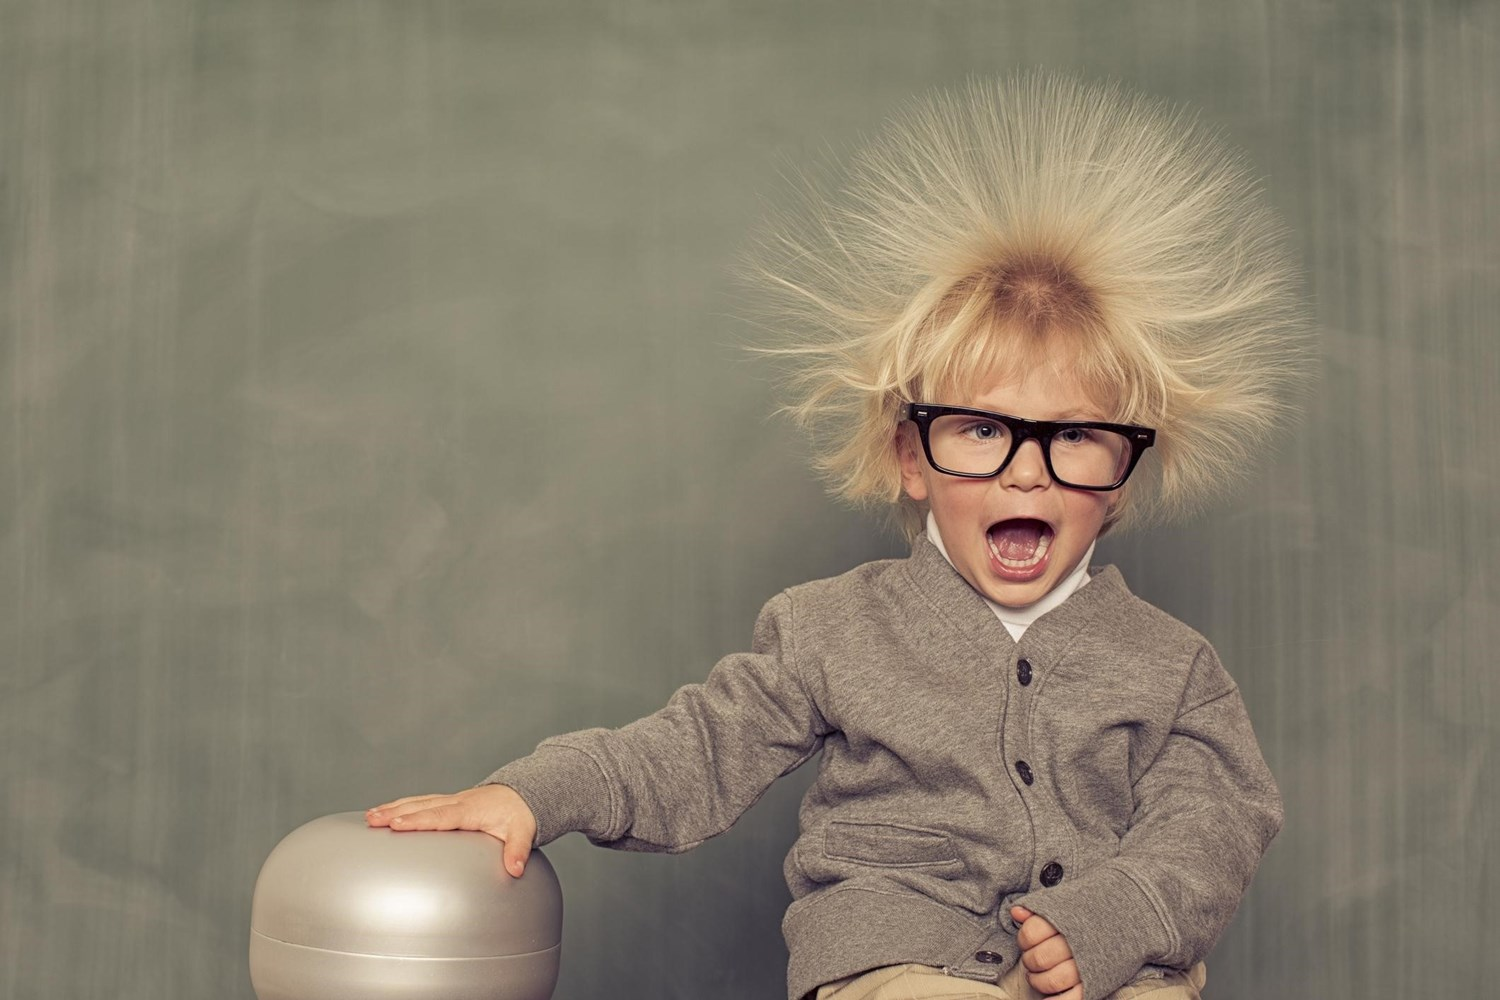 static electricity shocks